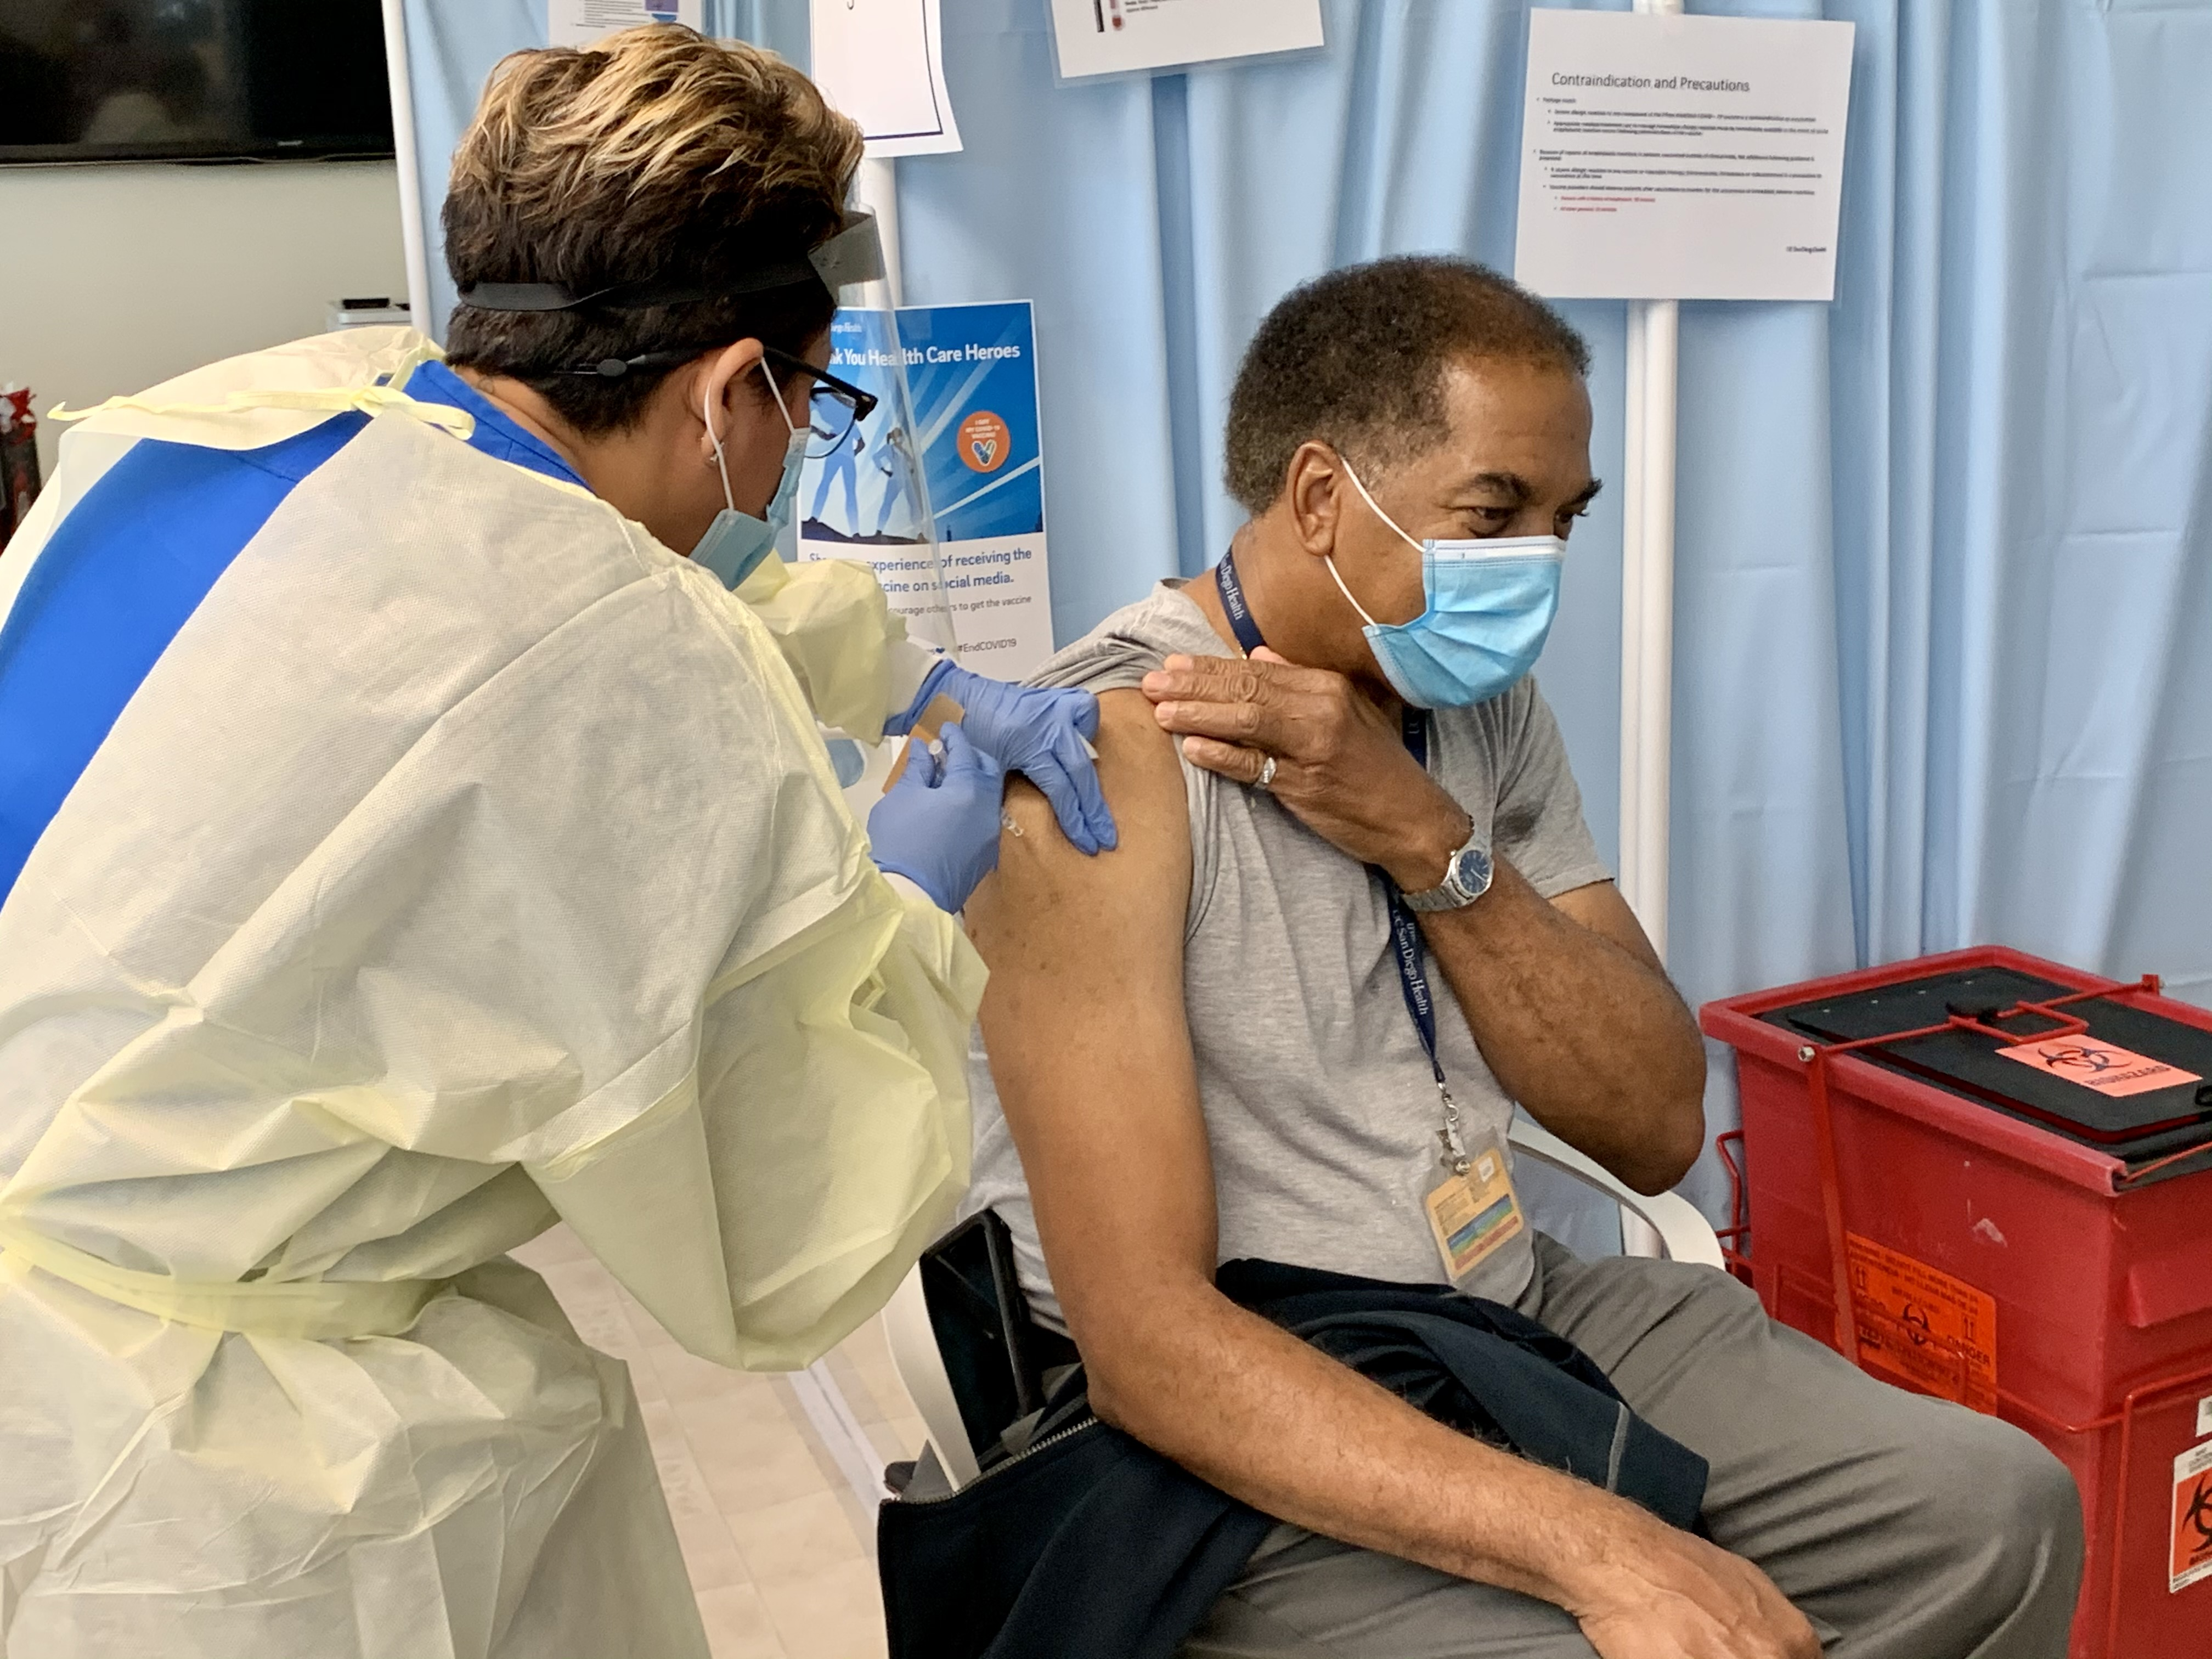 Seniors Struggle To Make Vaccination Appointments; County Works To Smooth Process